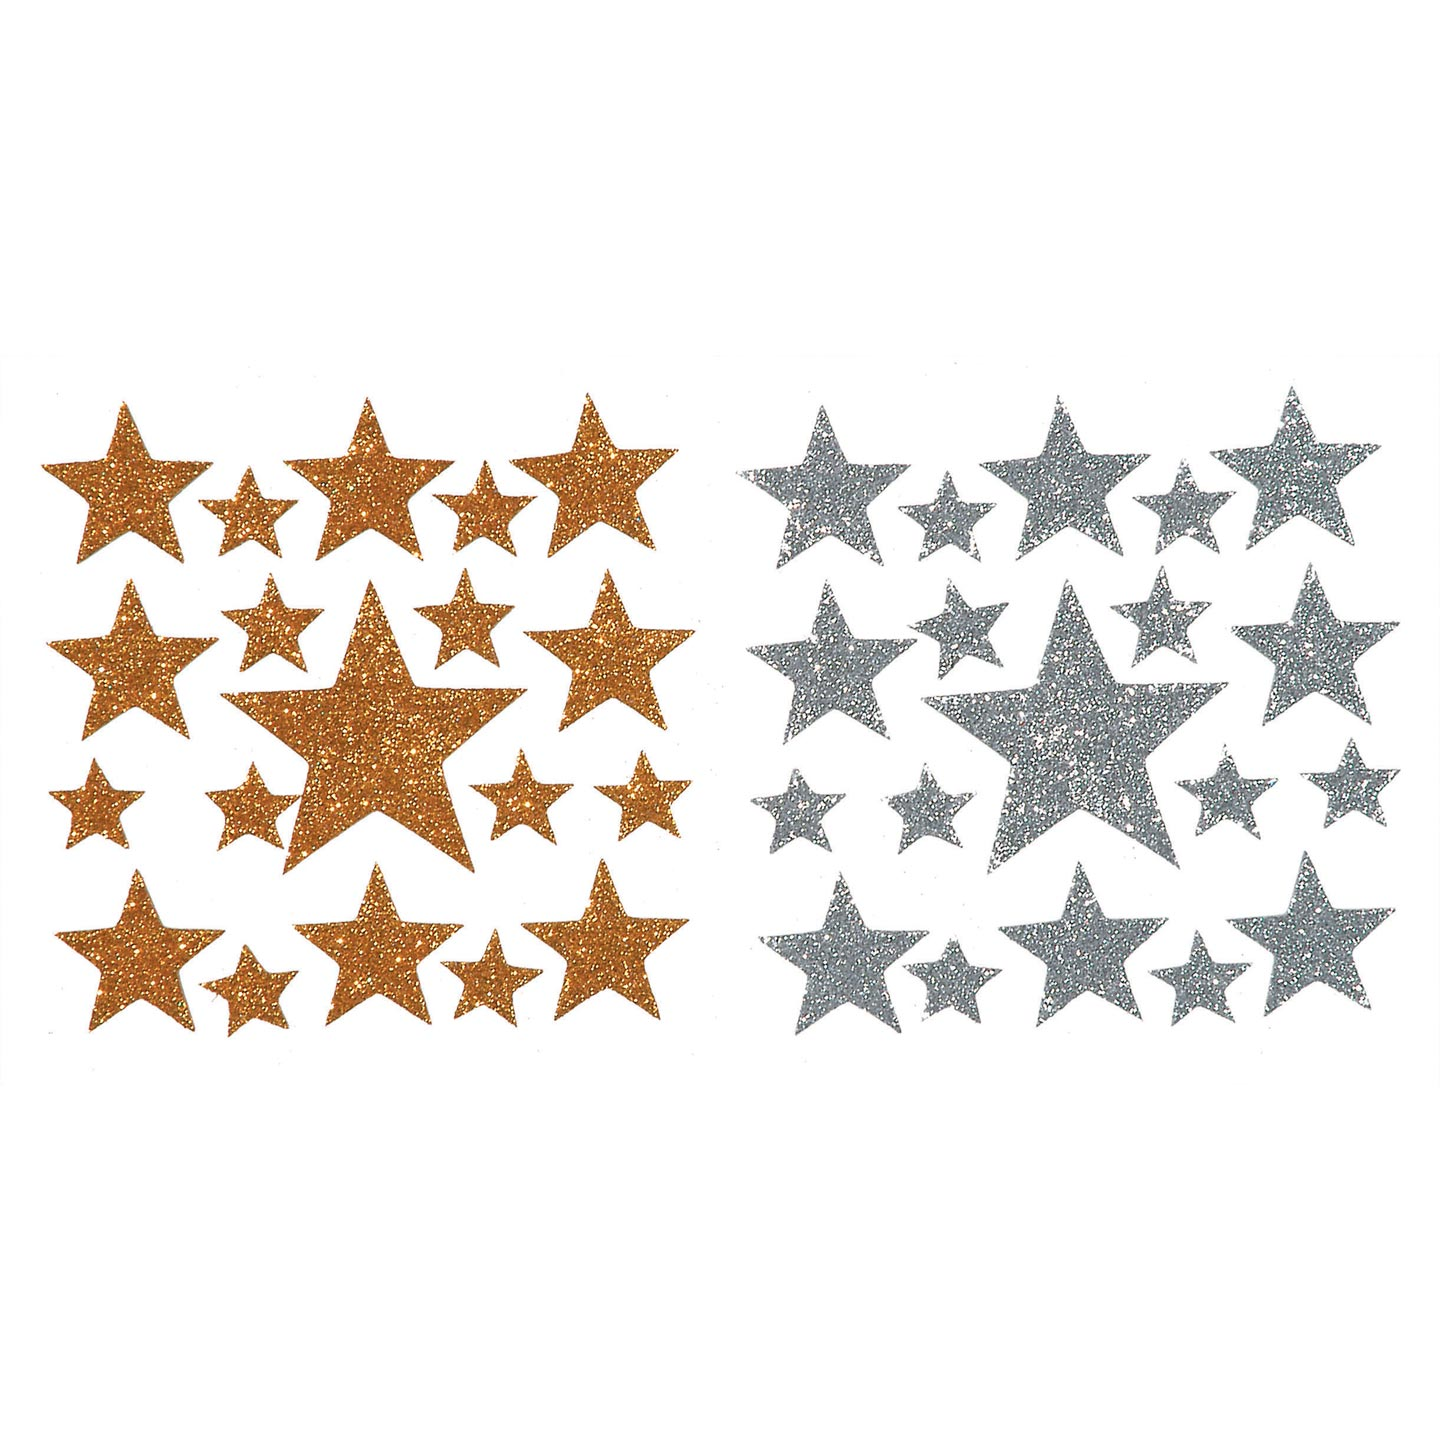 Darice Foamie Glitter Stars Stickers, 2 Sheets, Gold And Silver